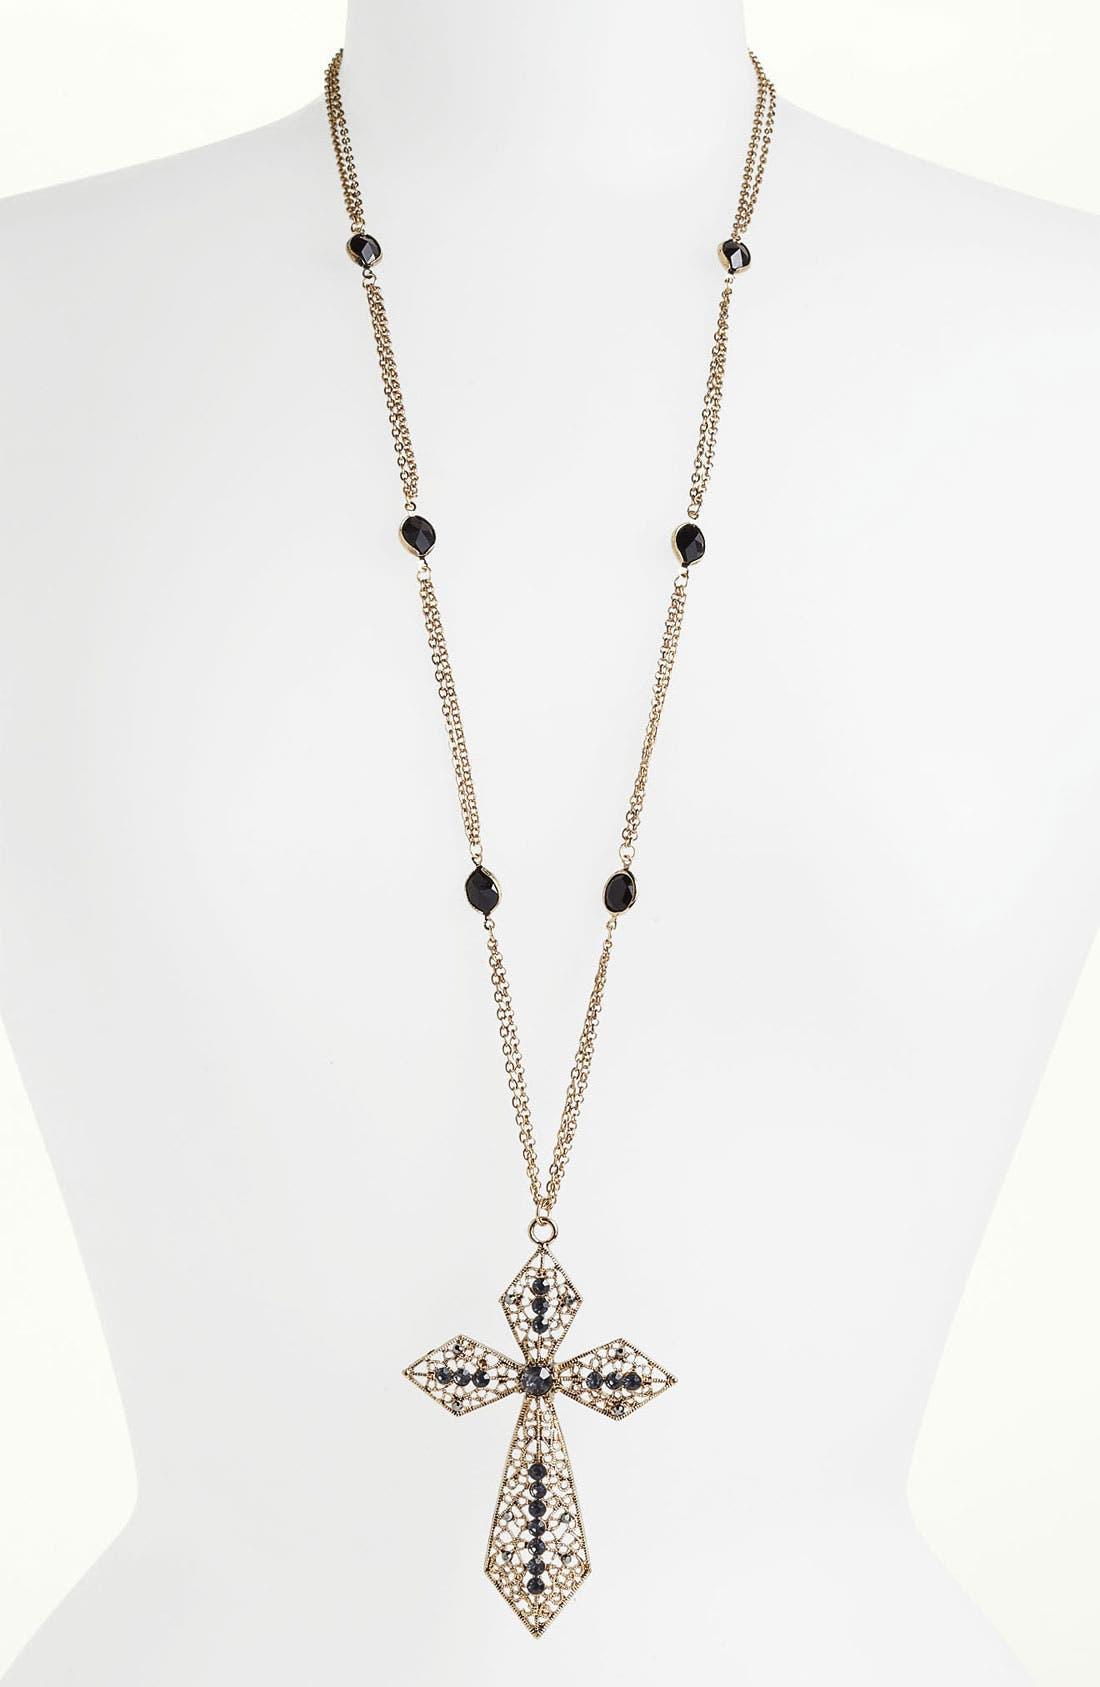 Main Image - Jewelry Fashions Crystal Cross Pendant Necklace